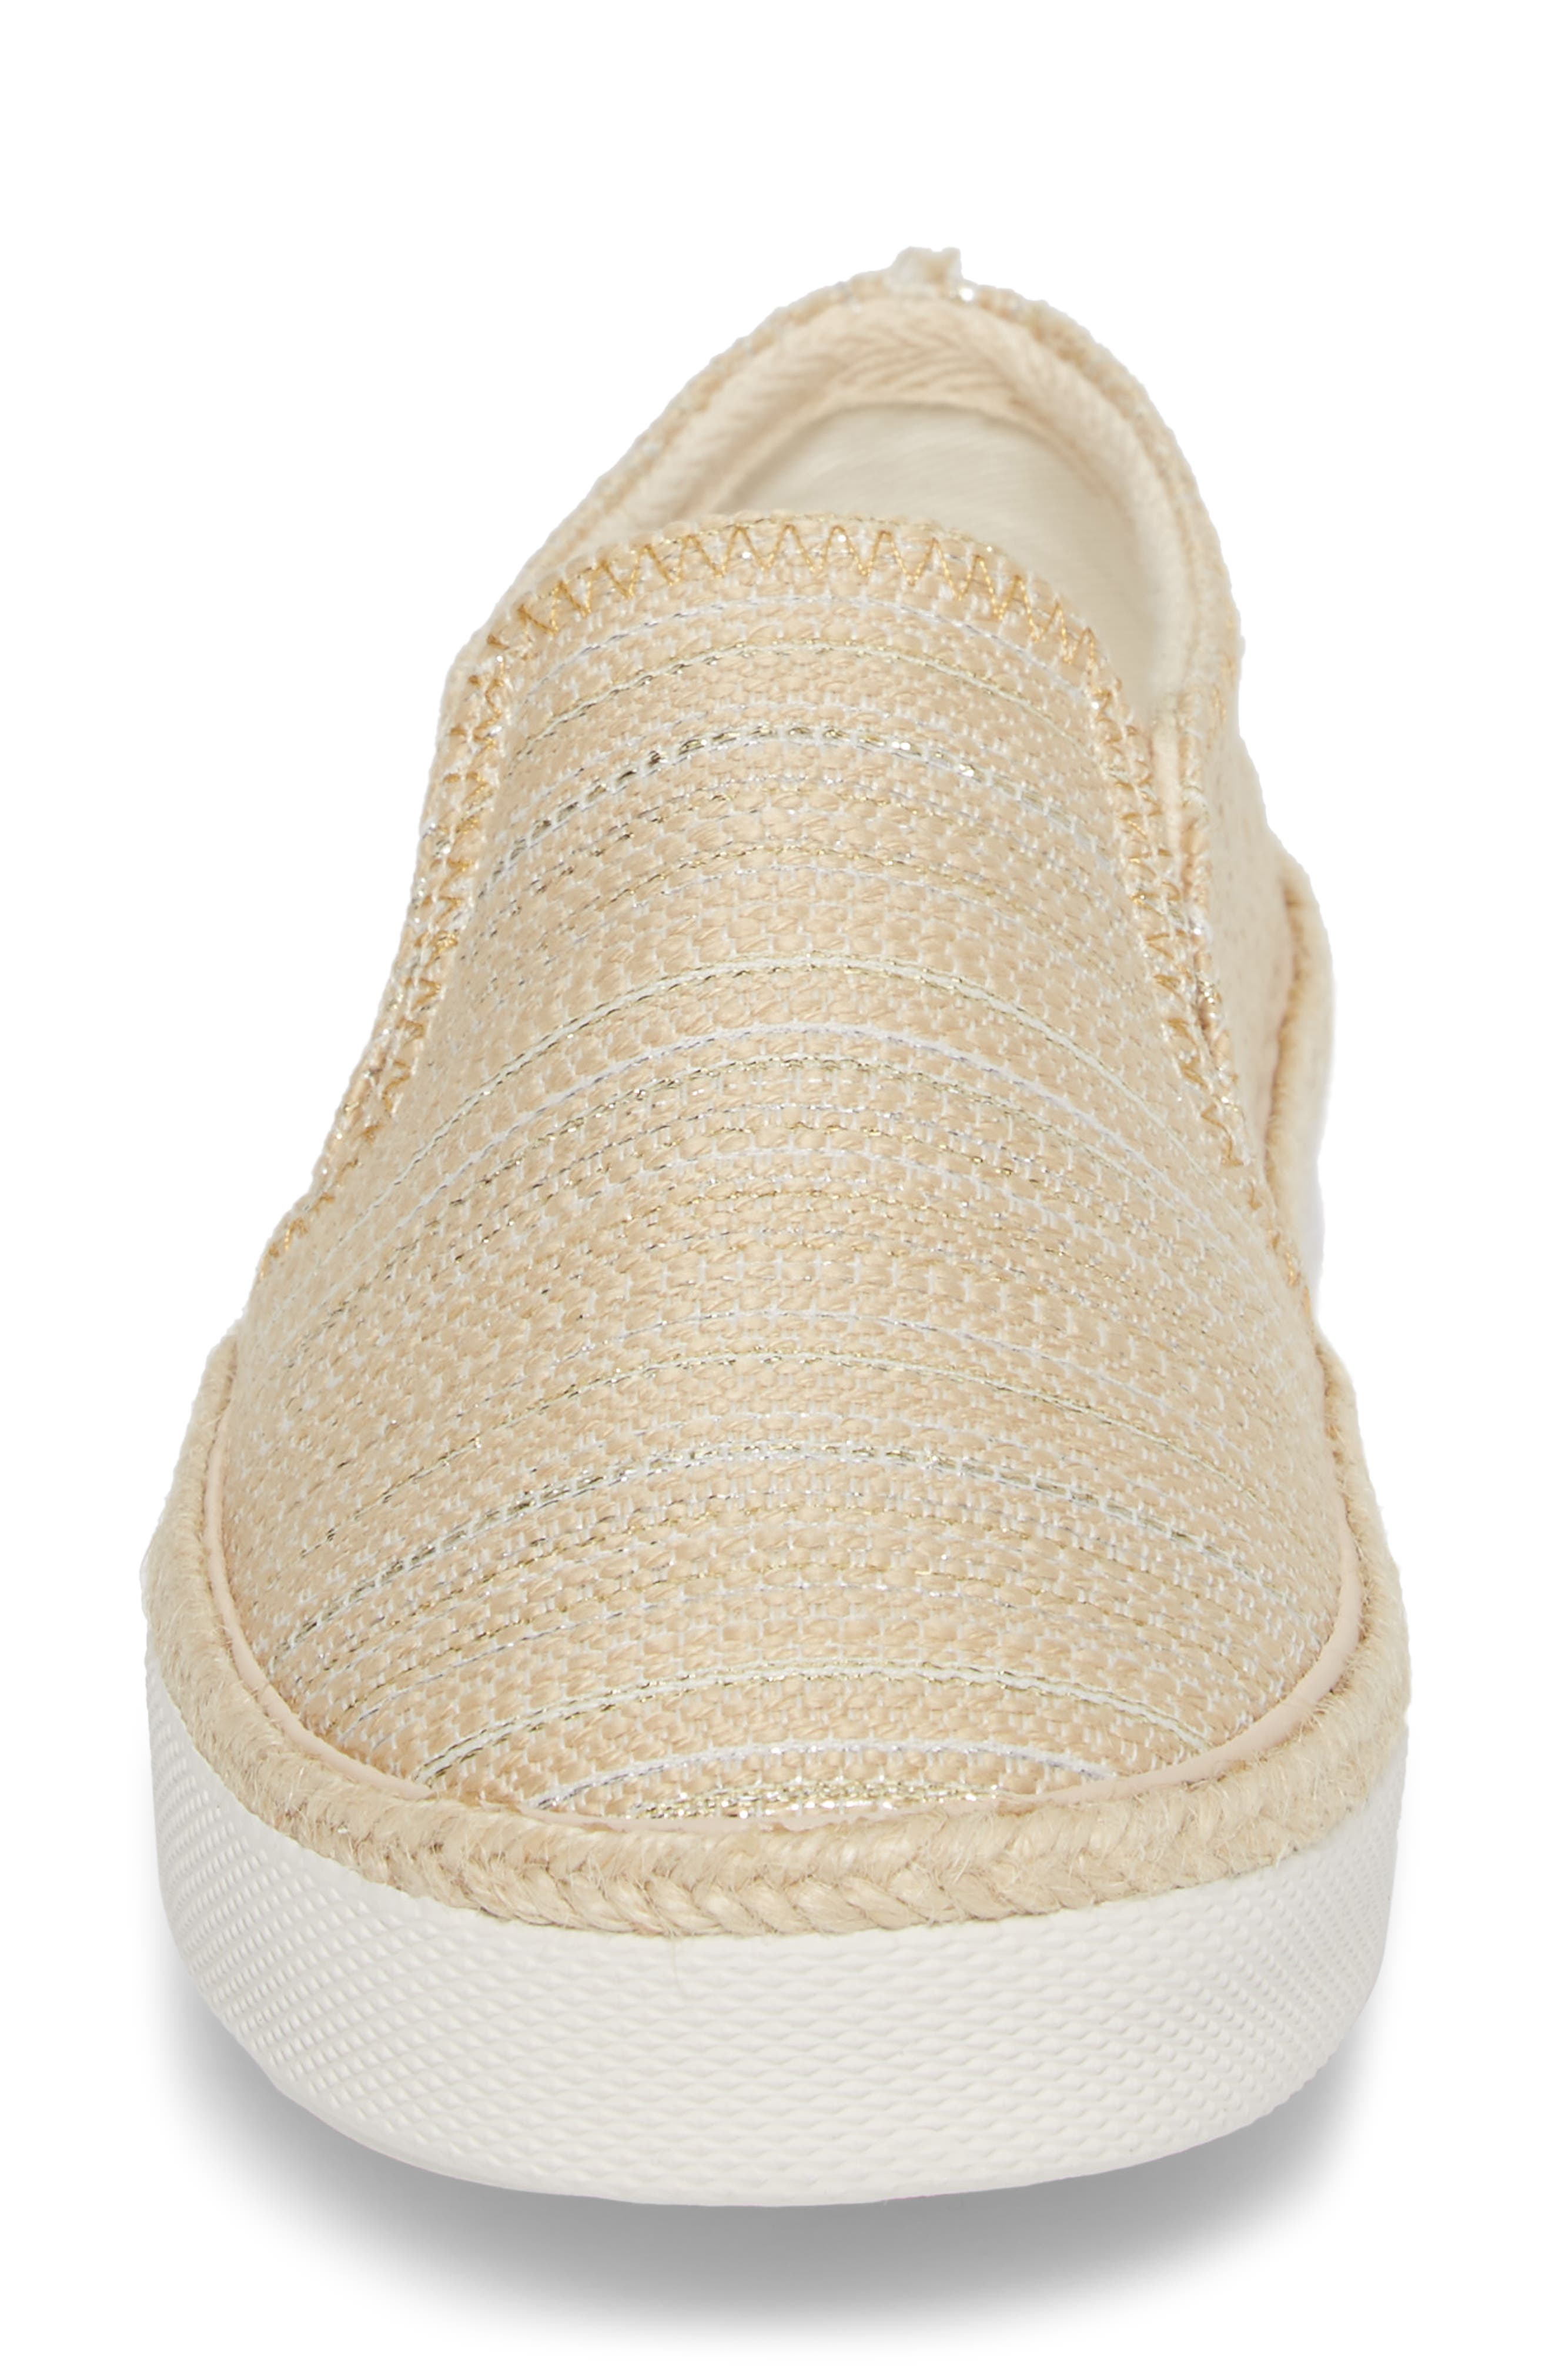 Tucker Slip-On Sneaker,                             Alternate thumbnail 4, color,                             Tan